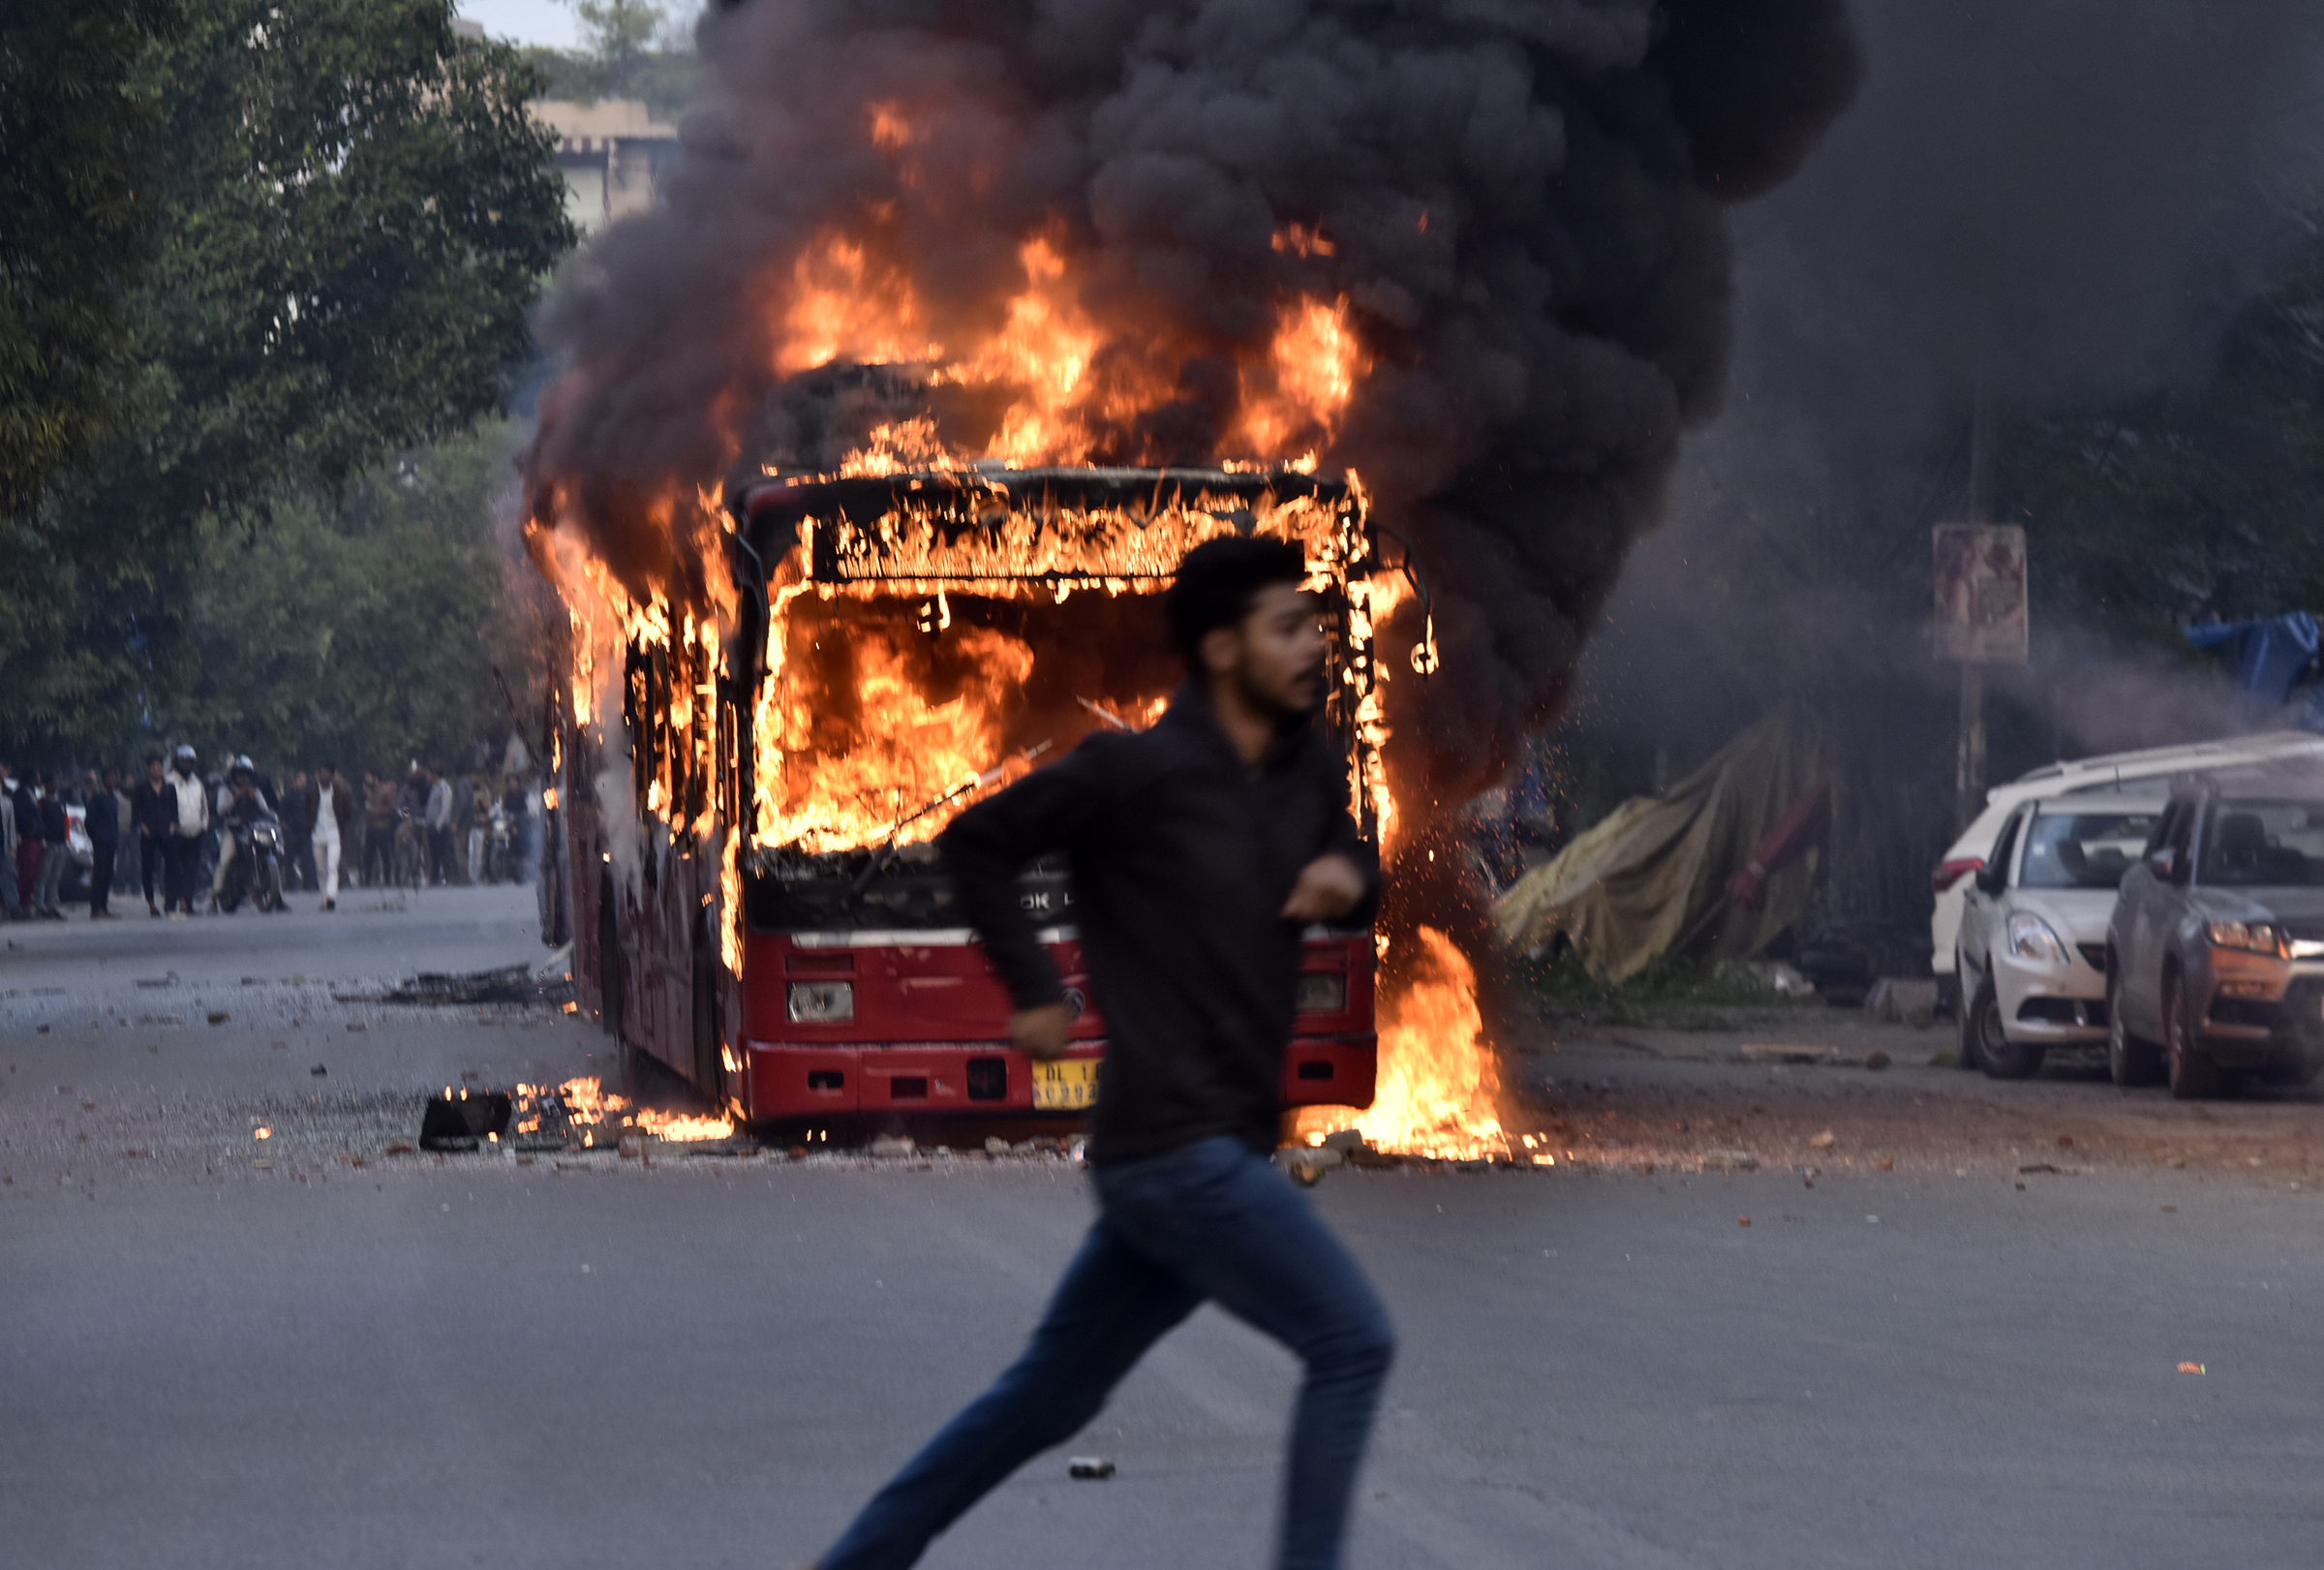 A burning bus is seen after it was set on fire by demonstrators during a protest against the Citizenship amendment Act (CAA) at New Friends Colony in New Delhi, India on Dec. 15, 2019.